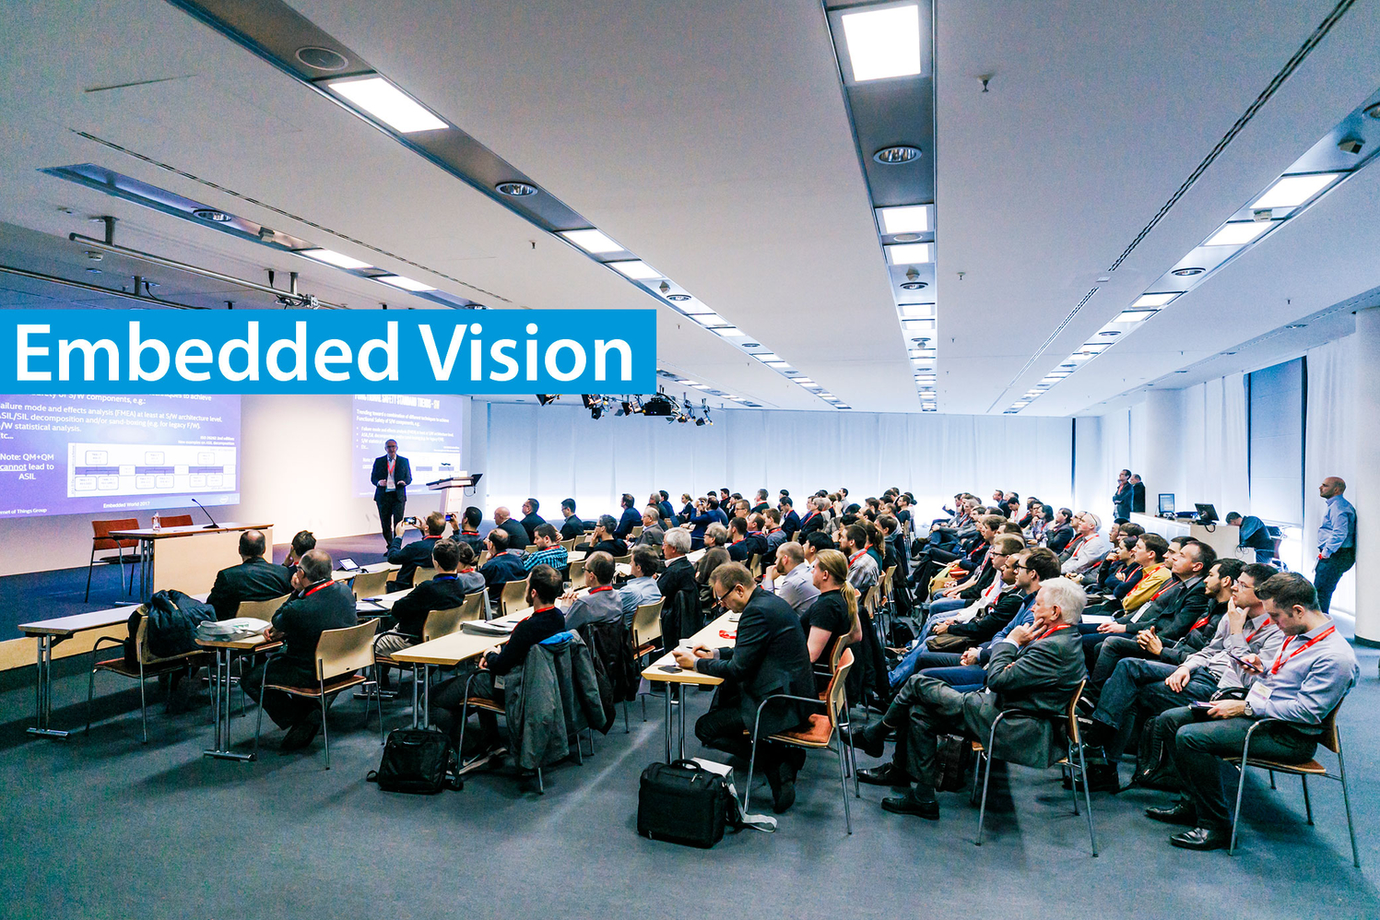 embedded world Conference - Embedded Vision